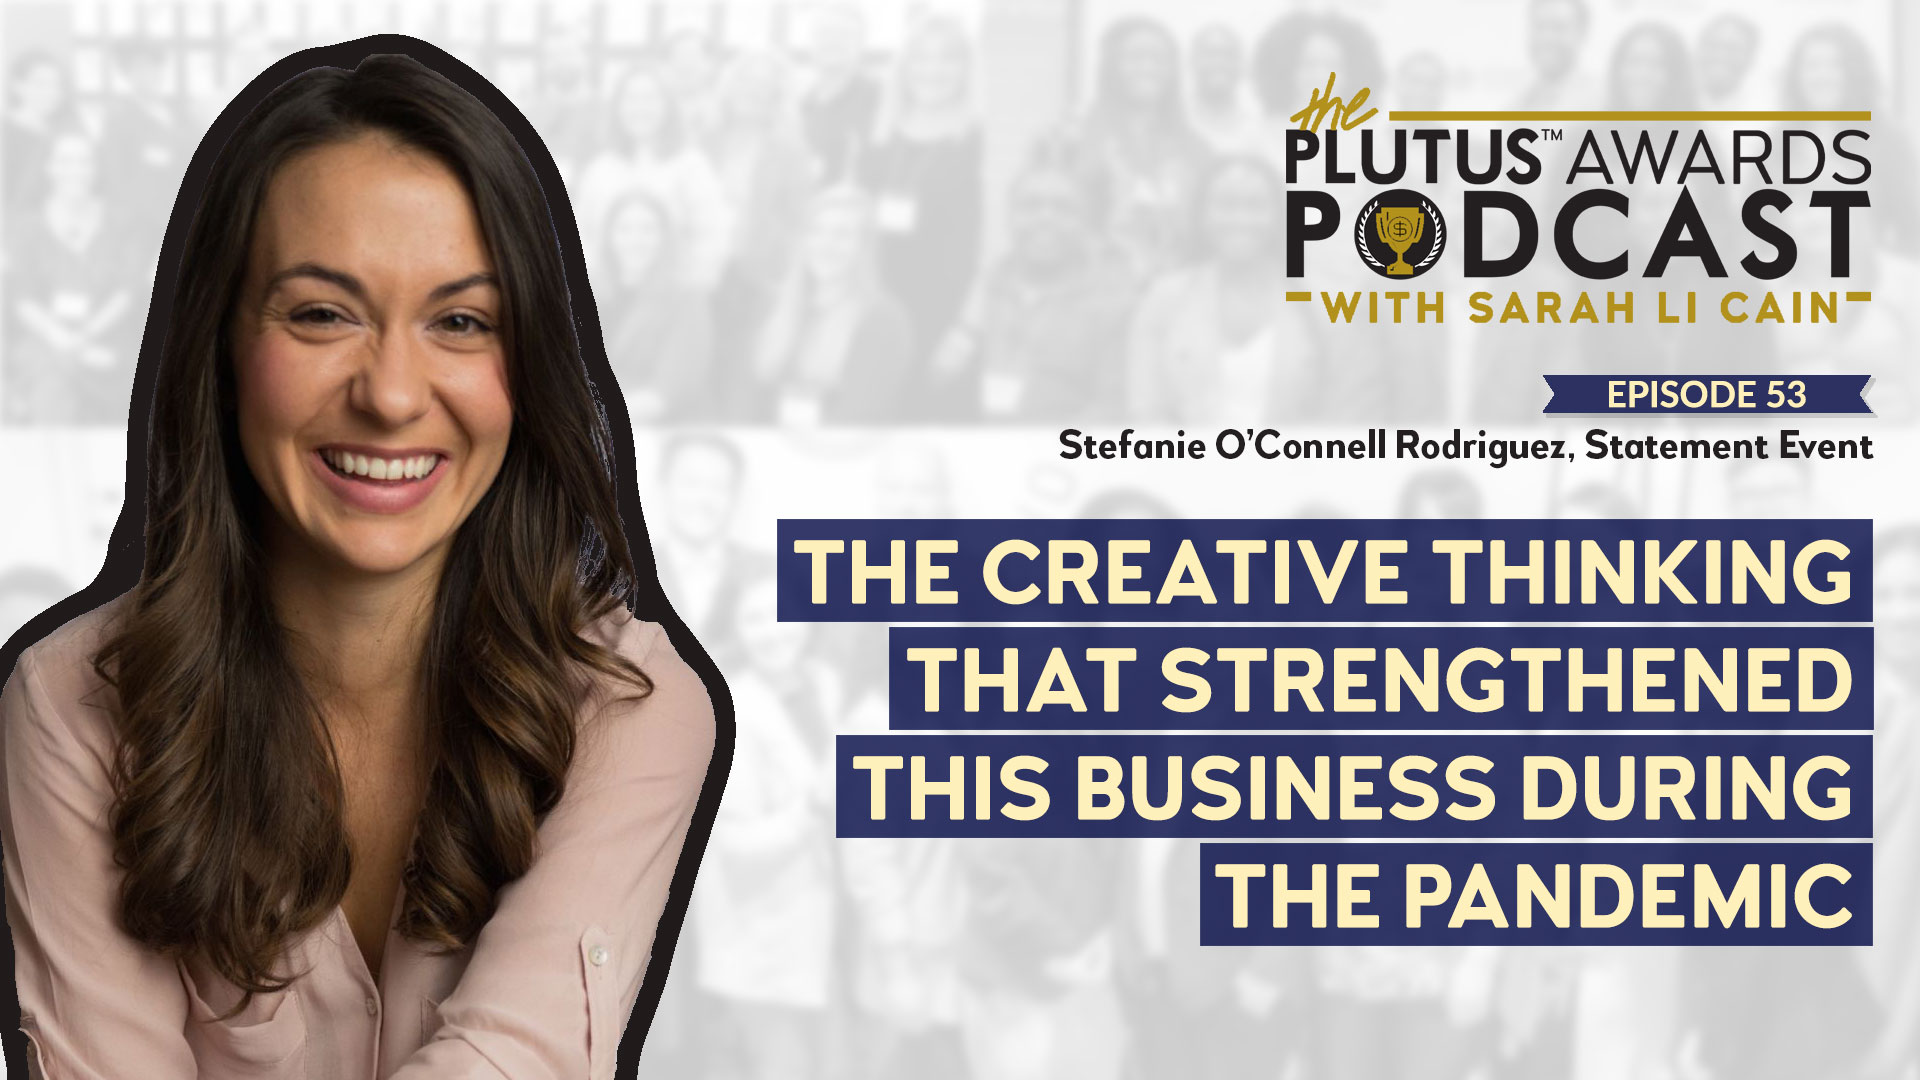 Plutus Awards Podcast - Stefanie O'Connell Rodriguez Featured Image